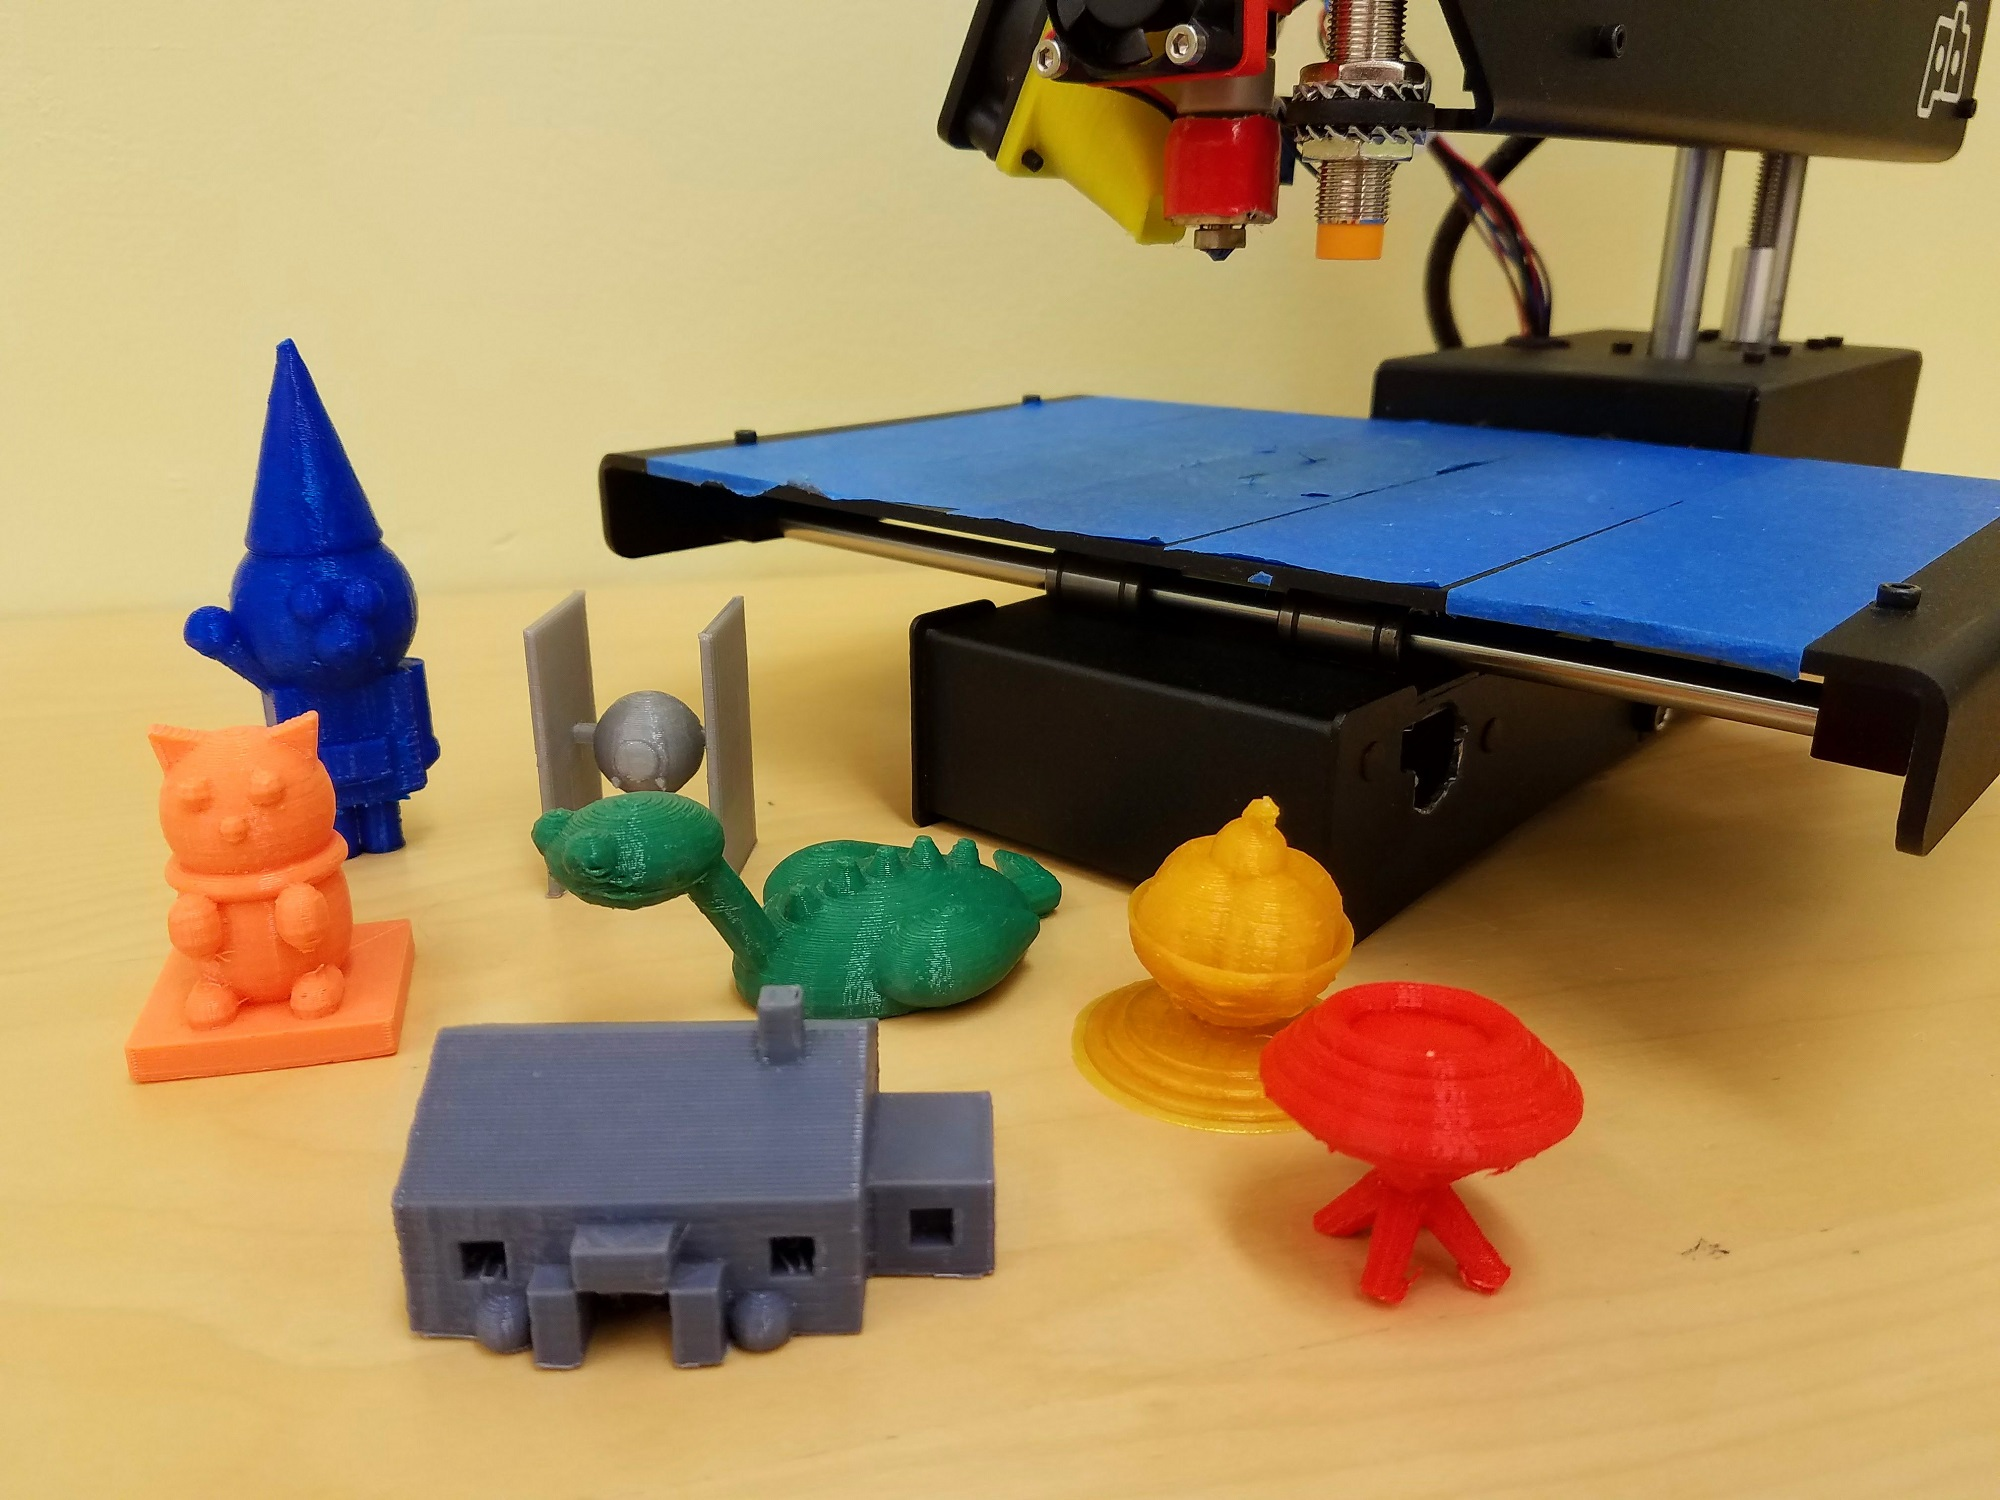 a colorful assortment of small 3D-printed figures arranged in front of a 3D printer